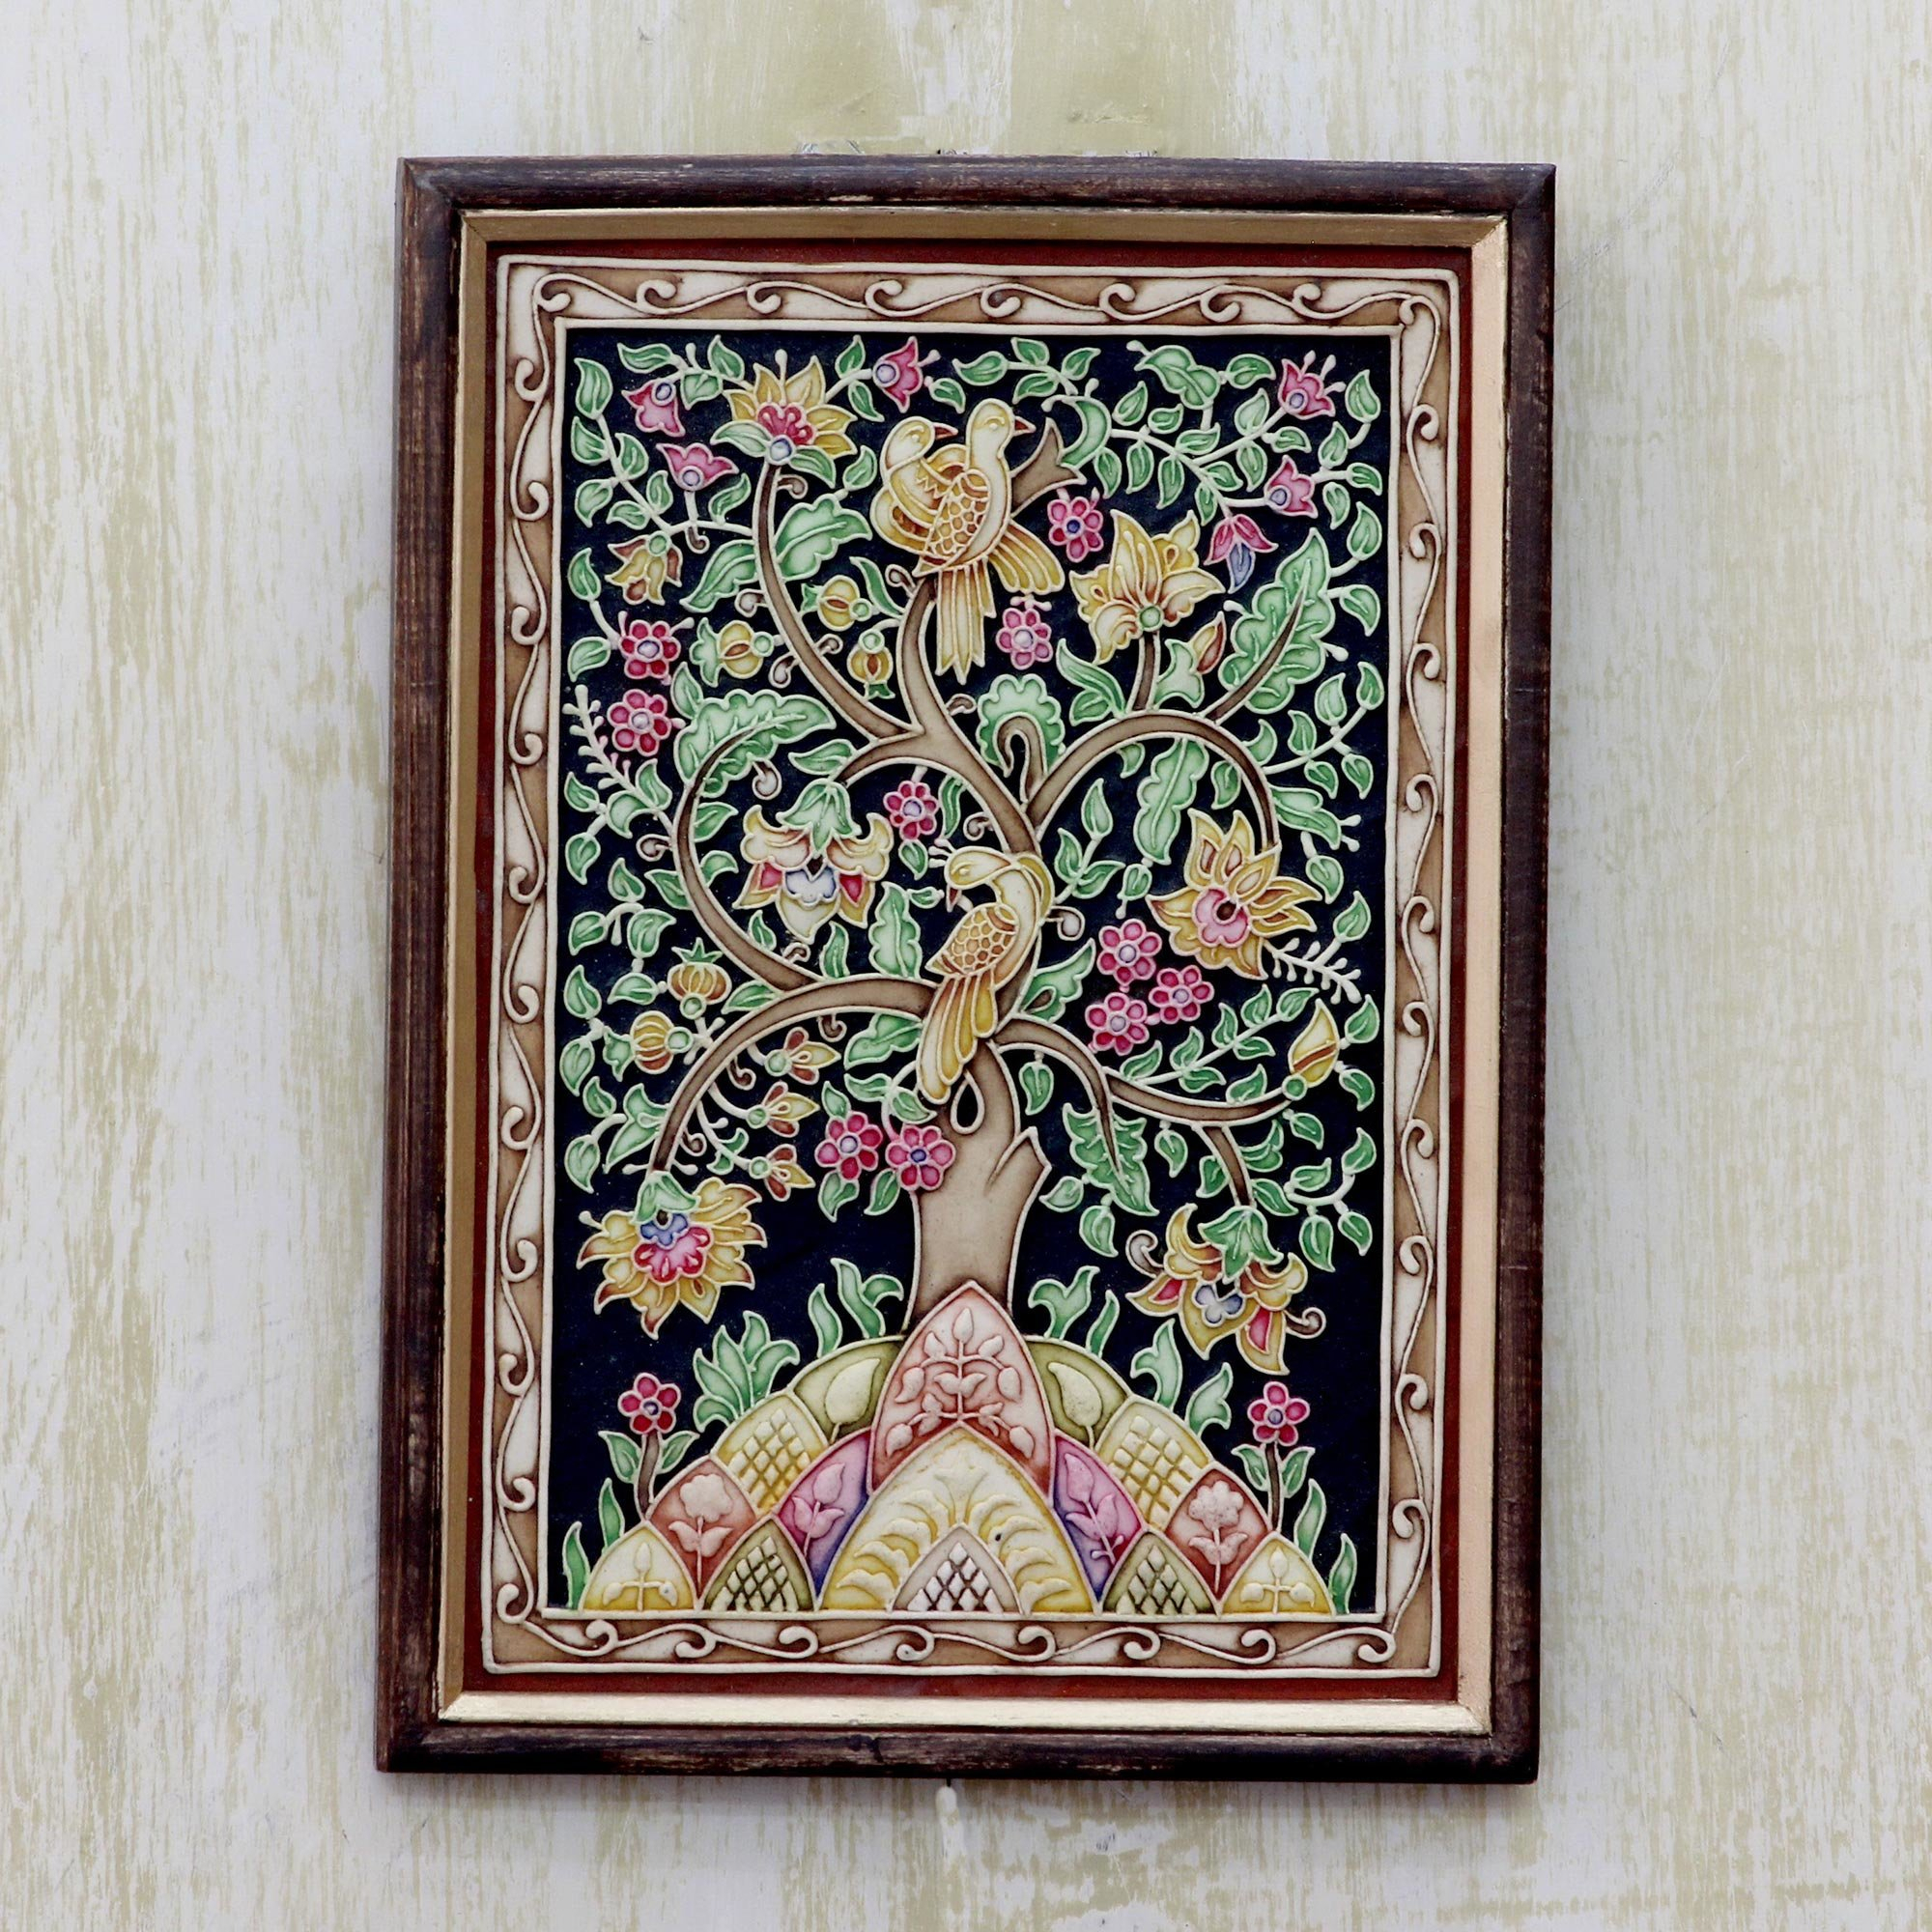 Peaceful Tree Of Life Framed Marble Dust Relief Panel With Birds And  Flowers Wall Décor regarding 1 Piece Ortie Panel Wall Decor (Image 22 of 30)